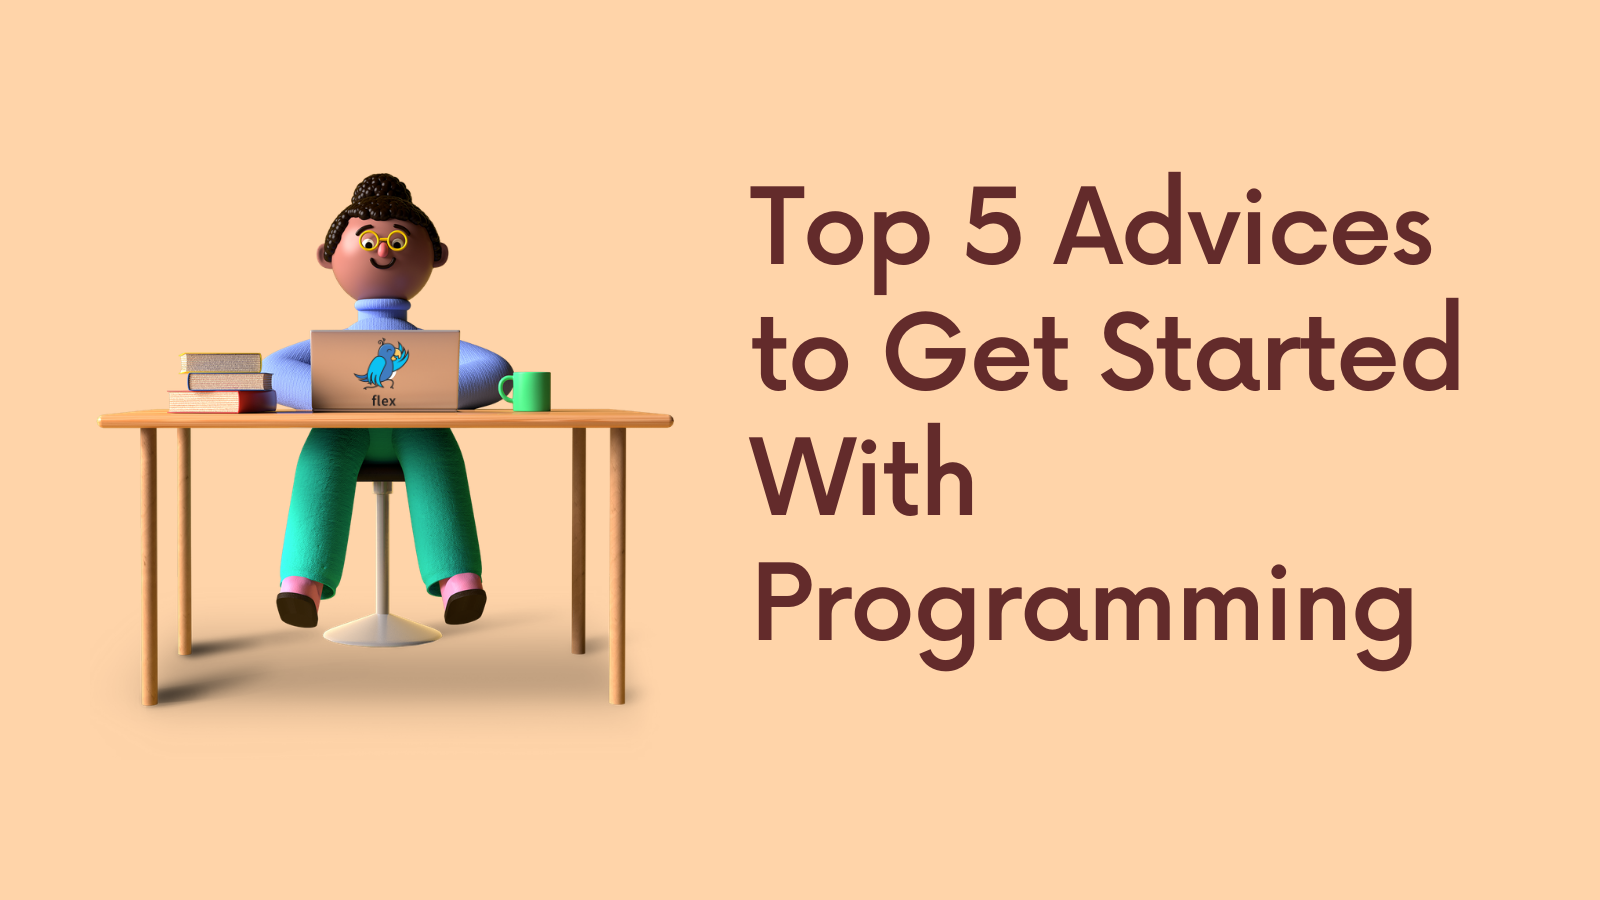 Top 5 Advices to Get Started With Programming